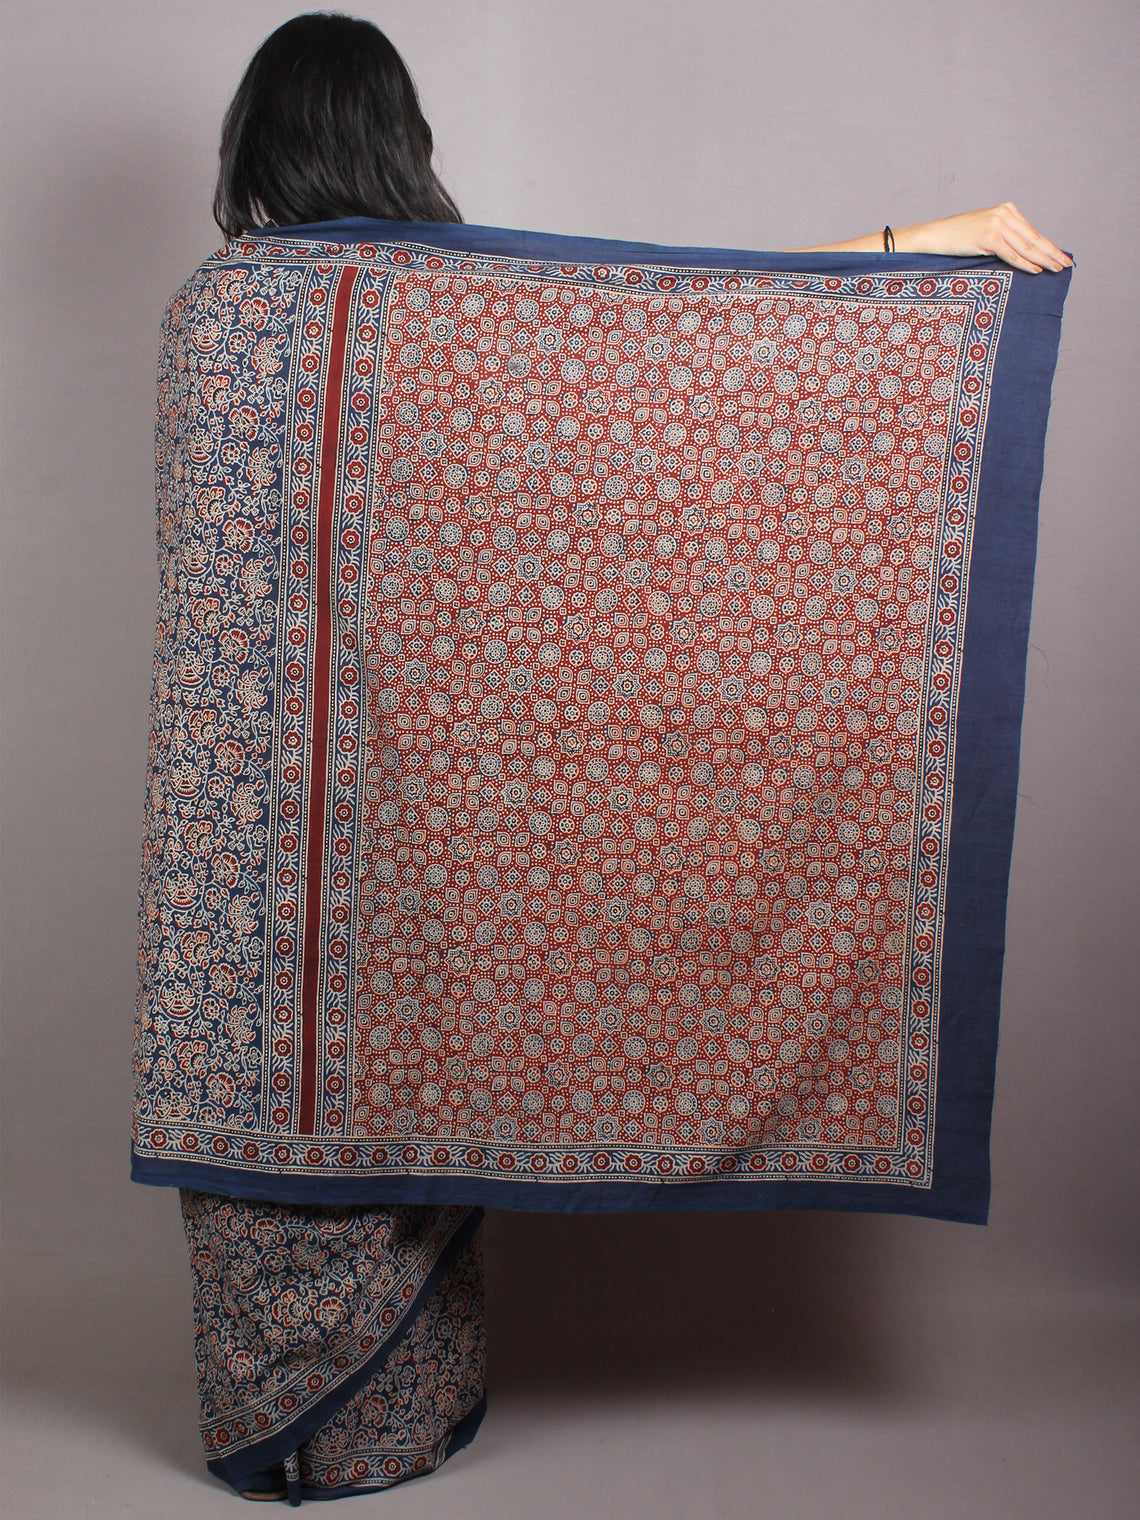 Indigo Beige Maroon Mughal Nakashi Ajrakh Hand Block Printed in Natural Vegetable Colors Cotton Mul Saree - S03170659